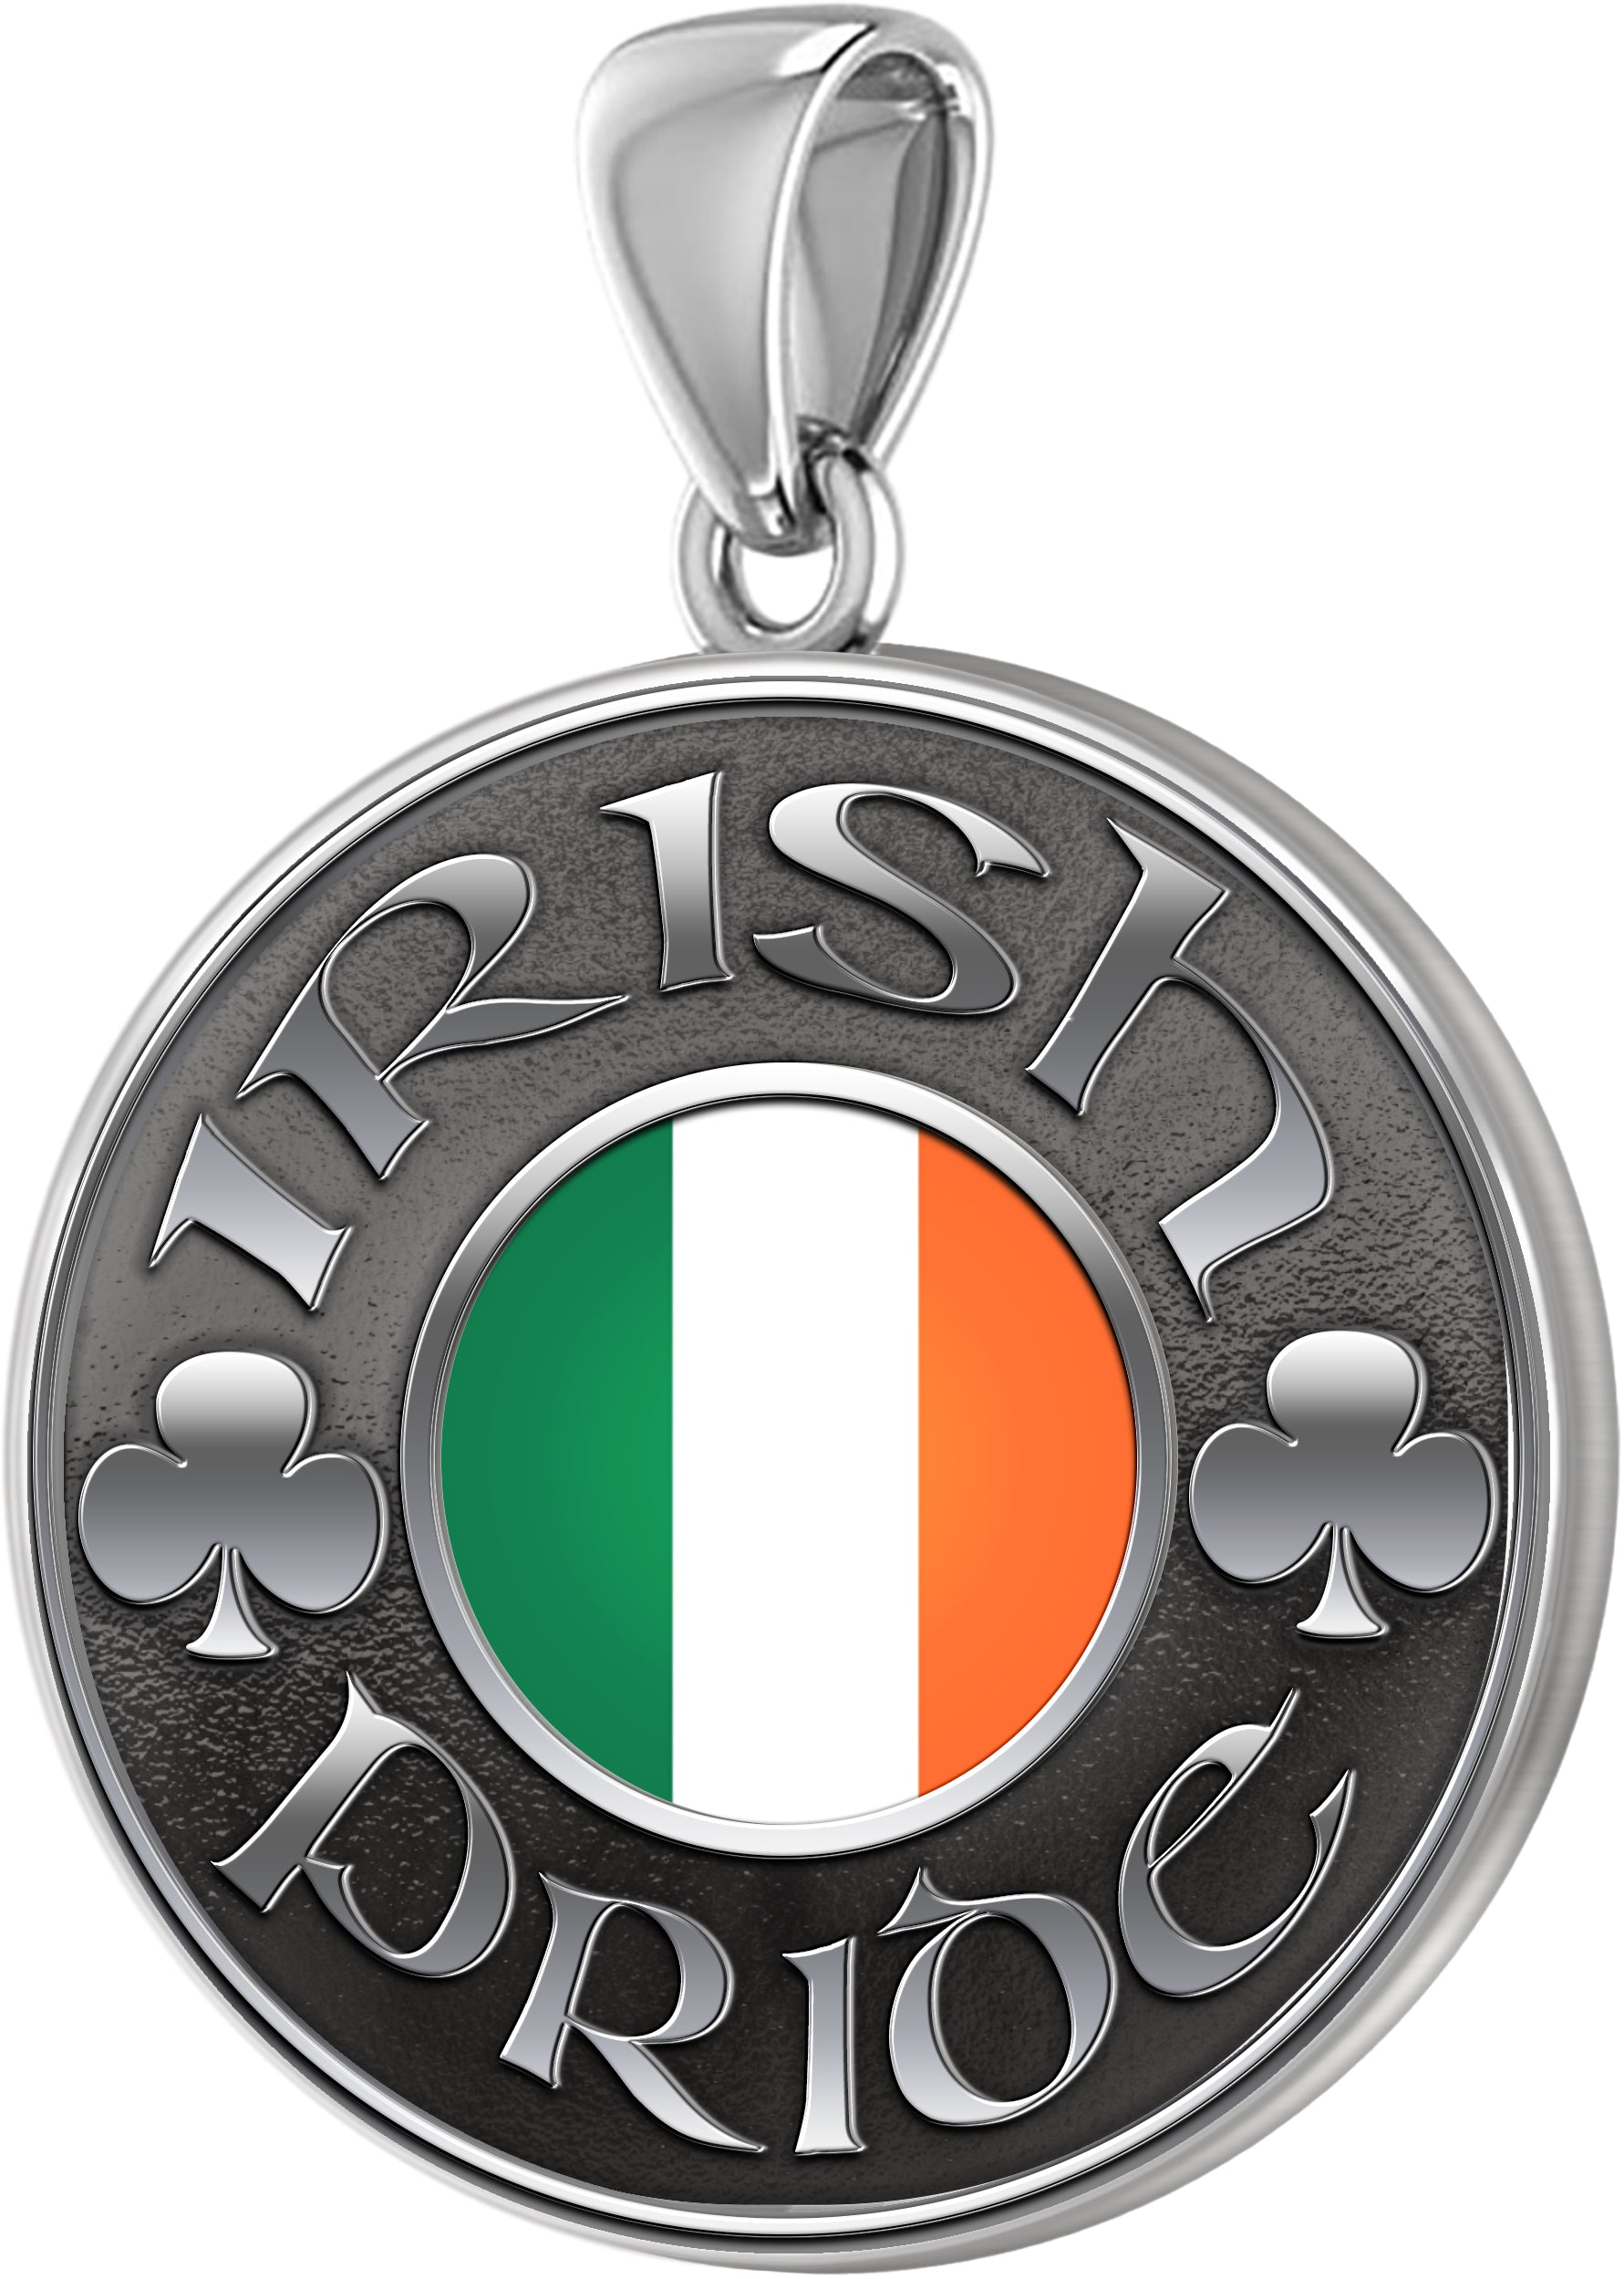 Irish Necklace For Men In Sterling Silver - No Chain